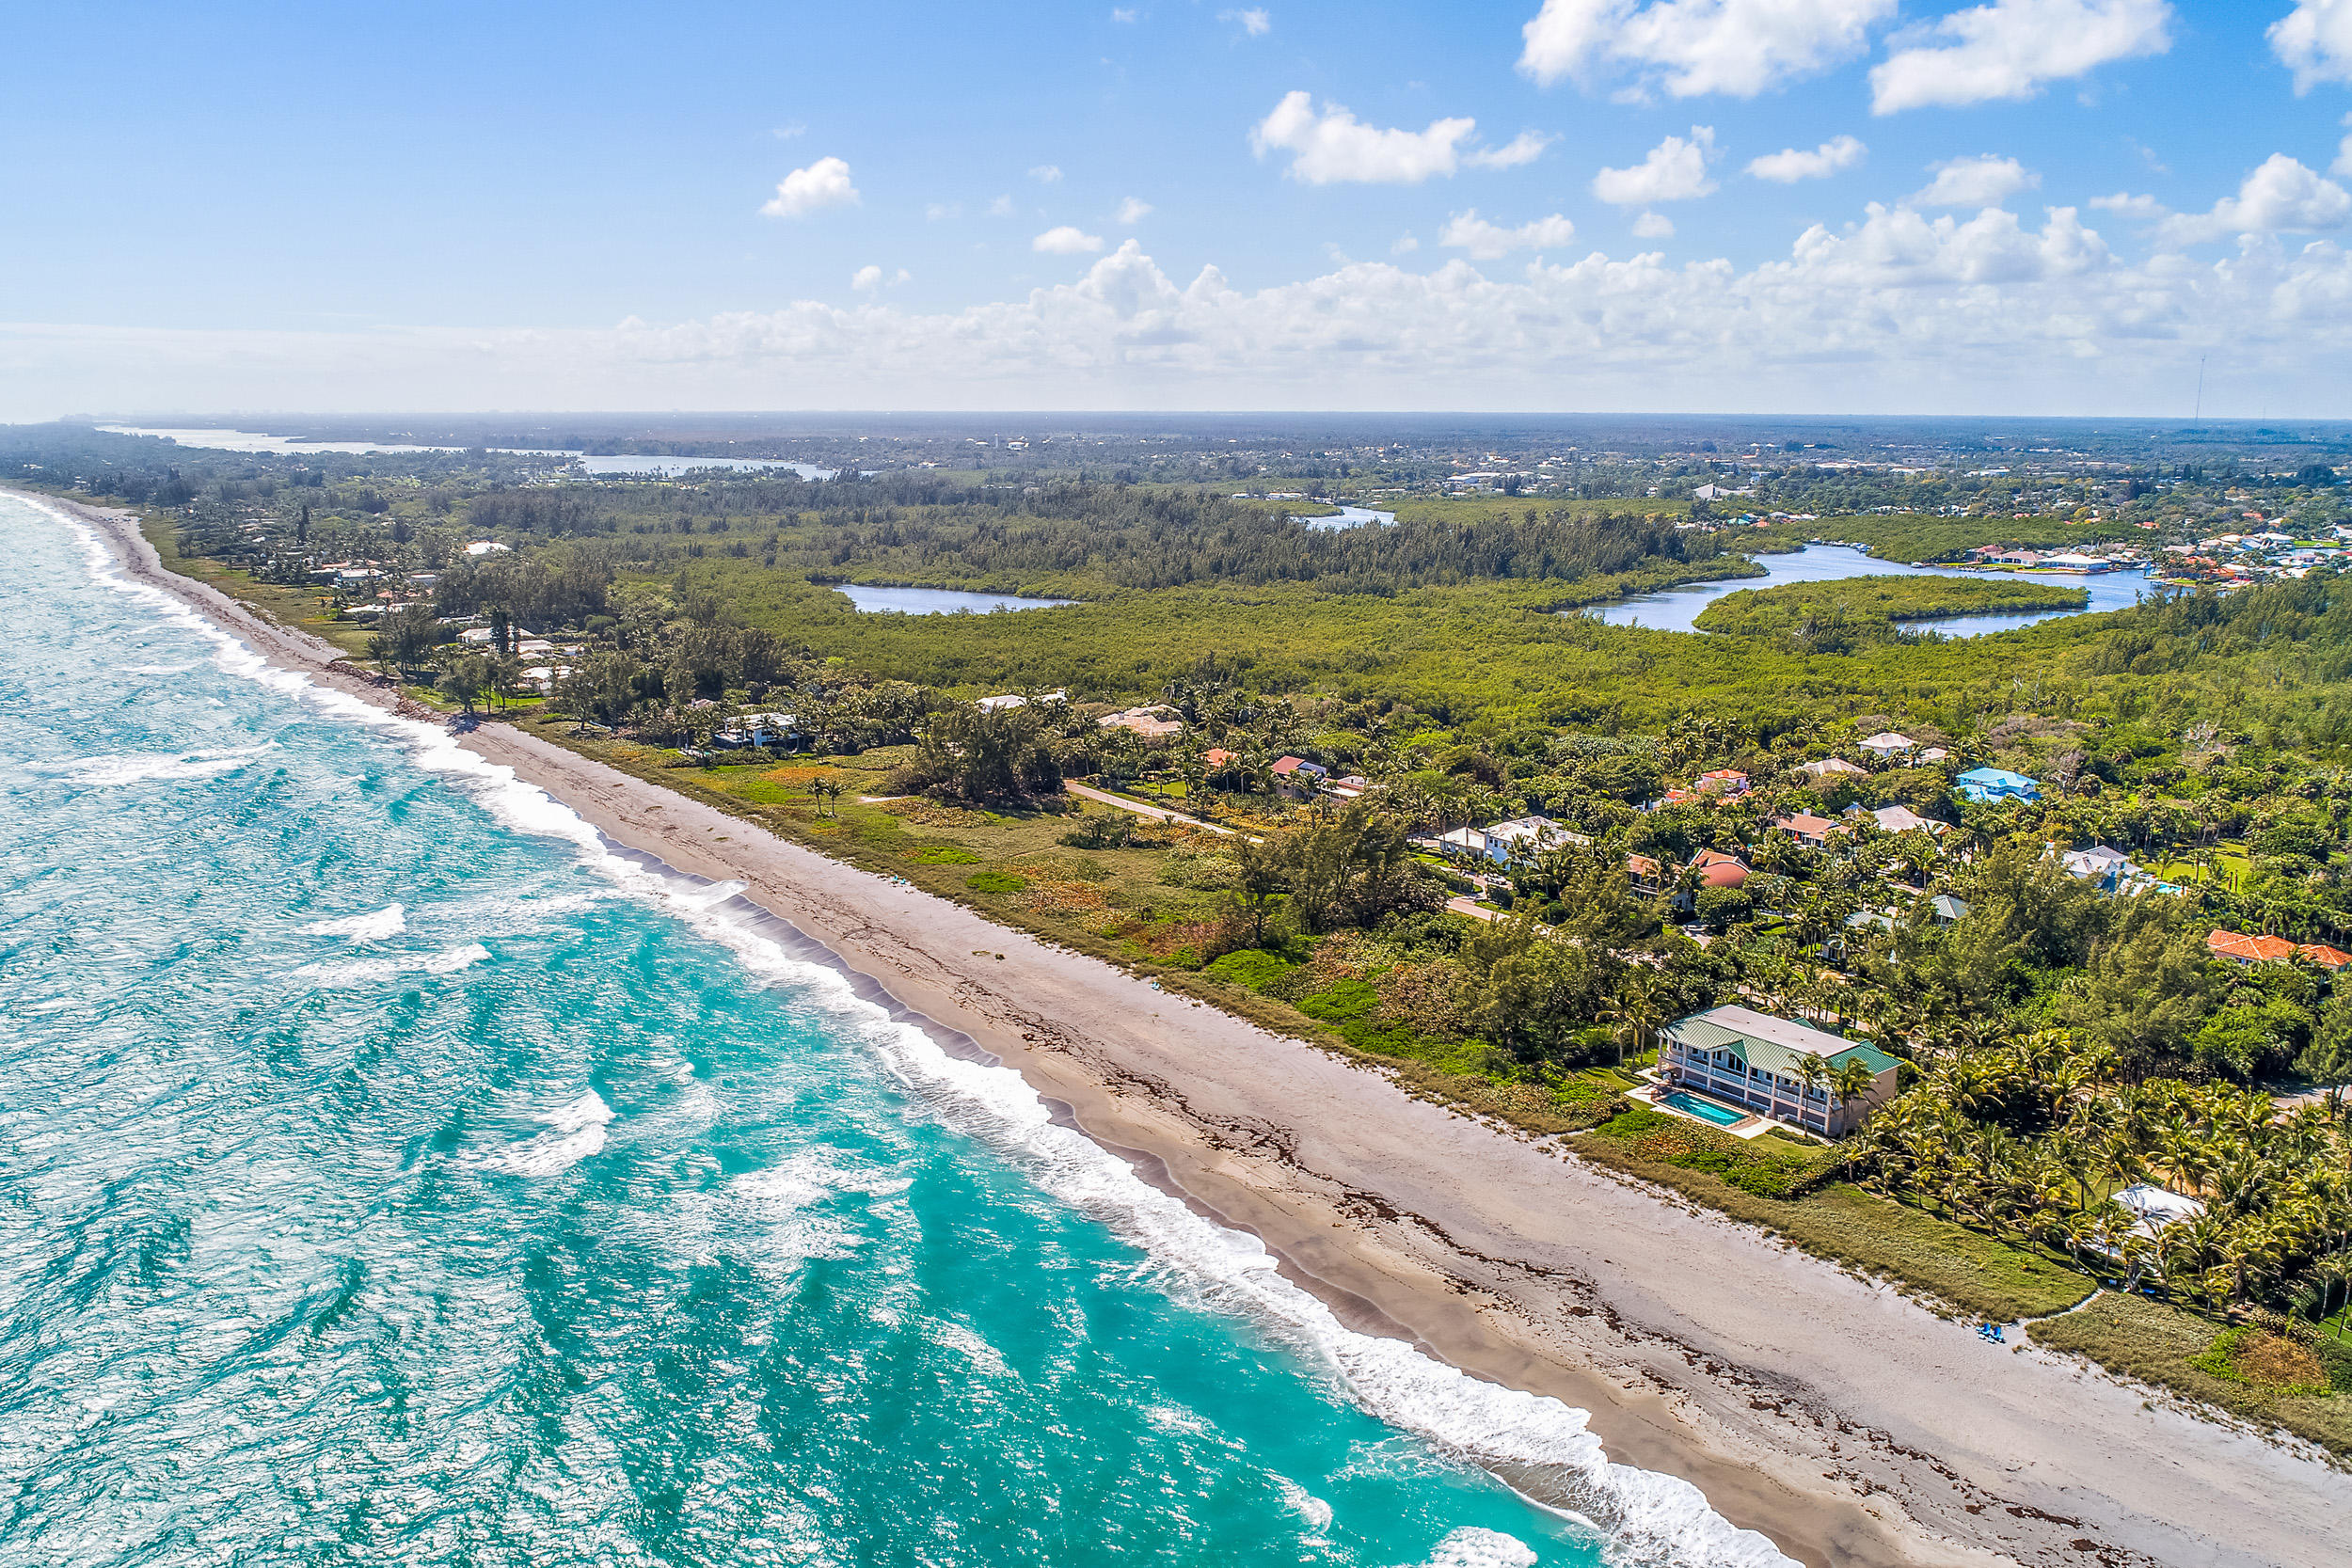 BON AIR BEACH HOBE SOUND